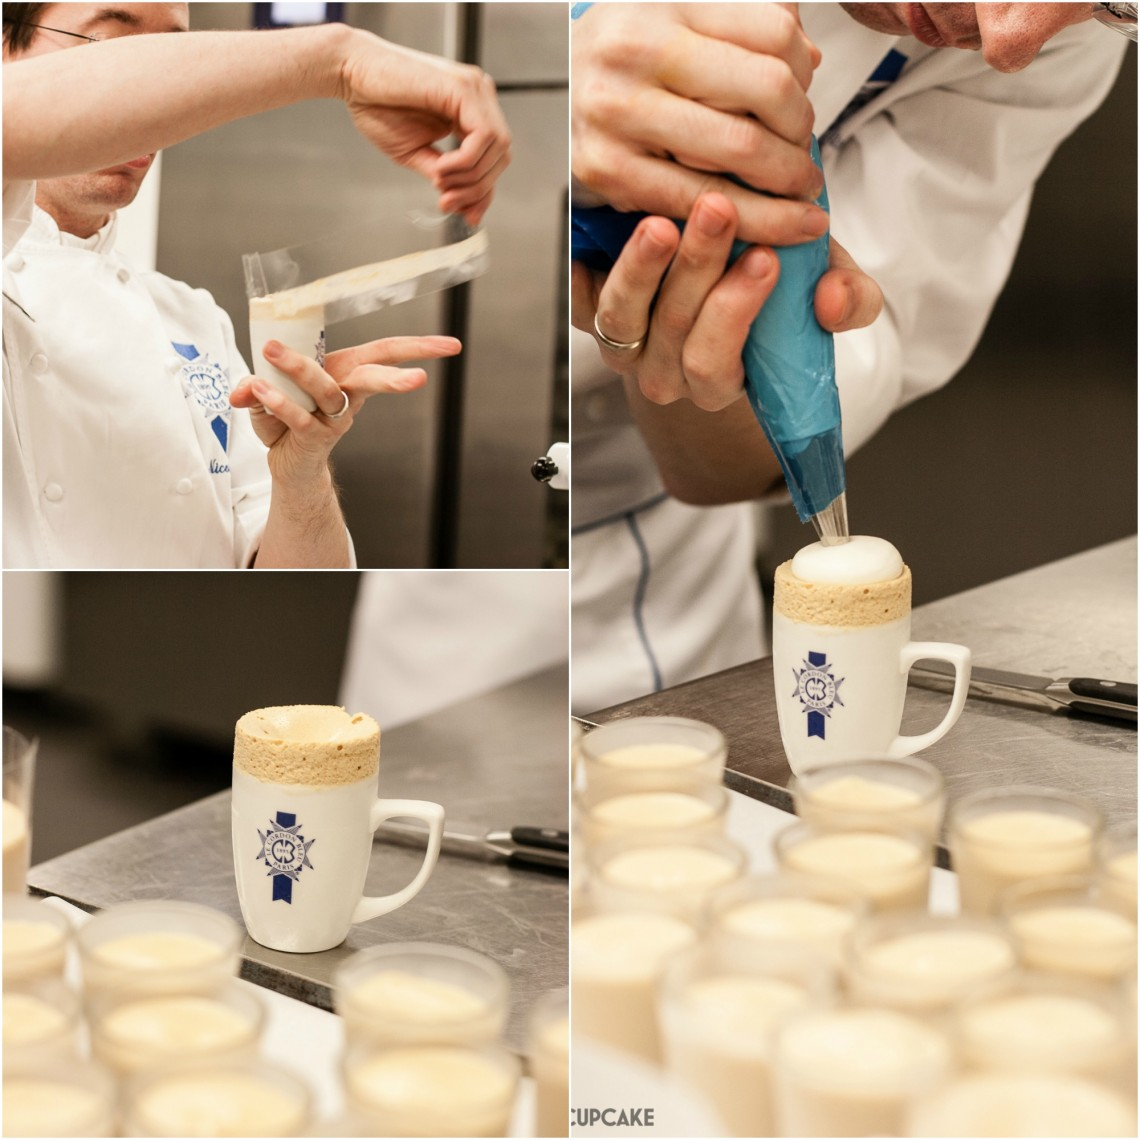 Piping iced coffee souffles at Le Cordon Bleu London